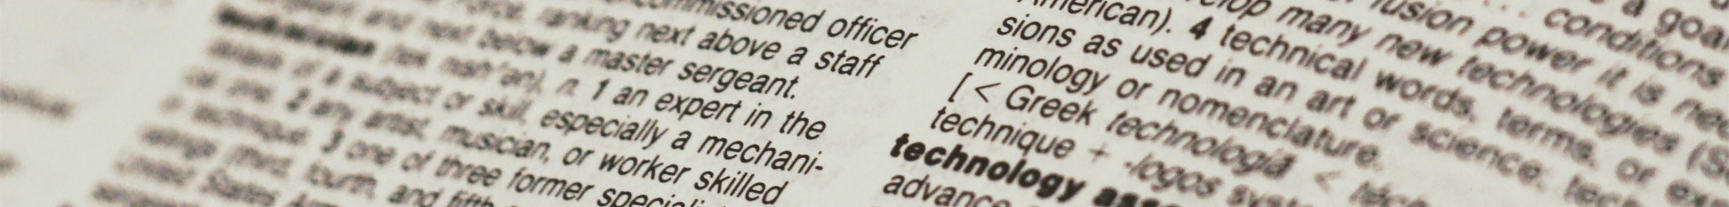 Image of a dictionary entry